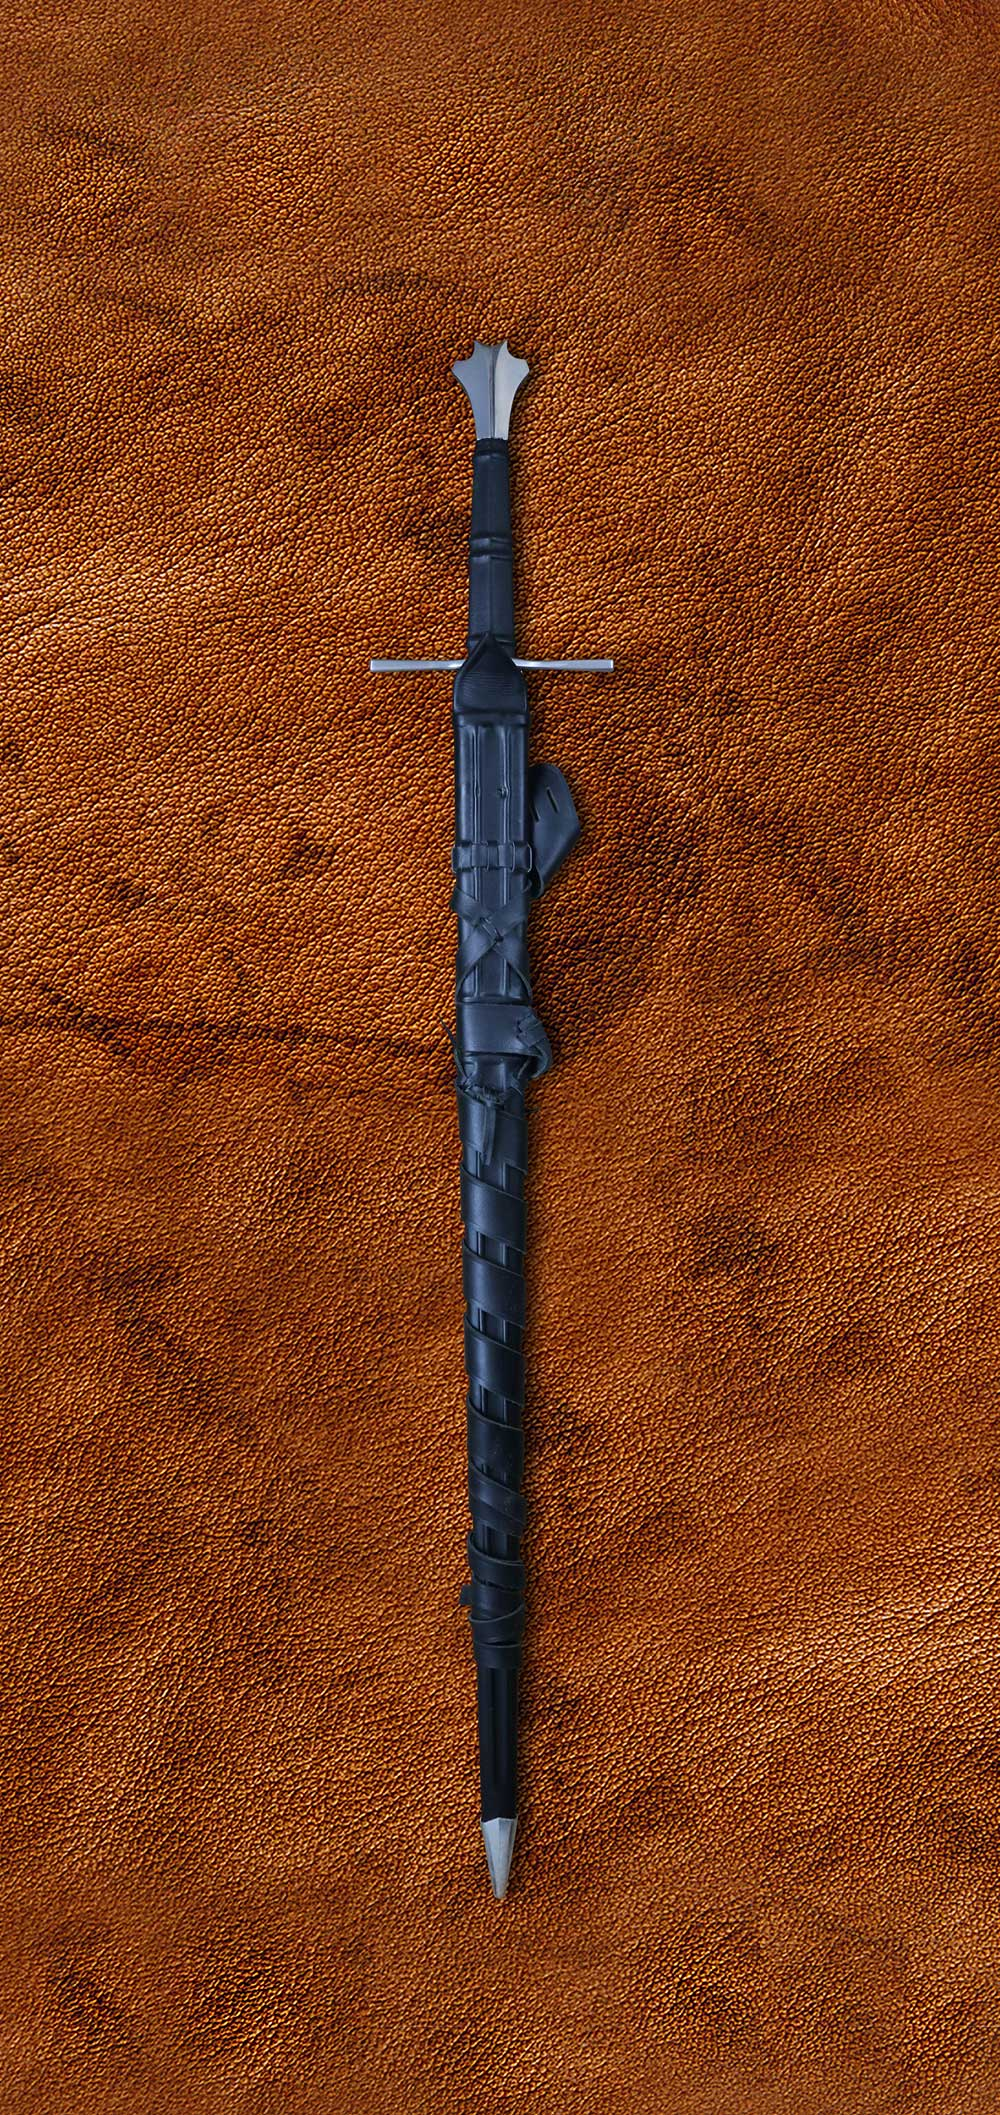 two-handed-medieval-sword-medieval-weapon-longsword-1332-